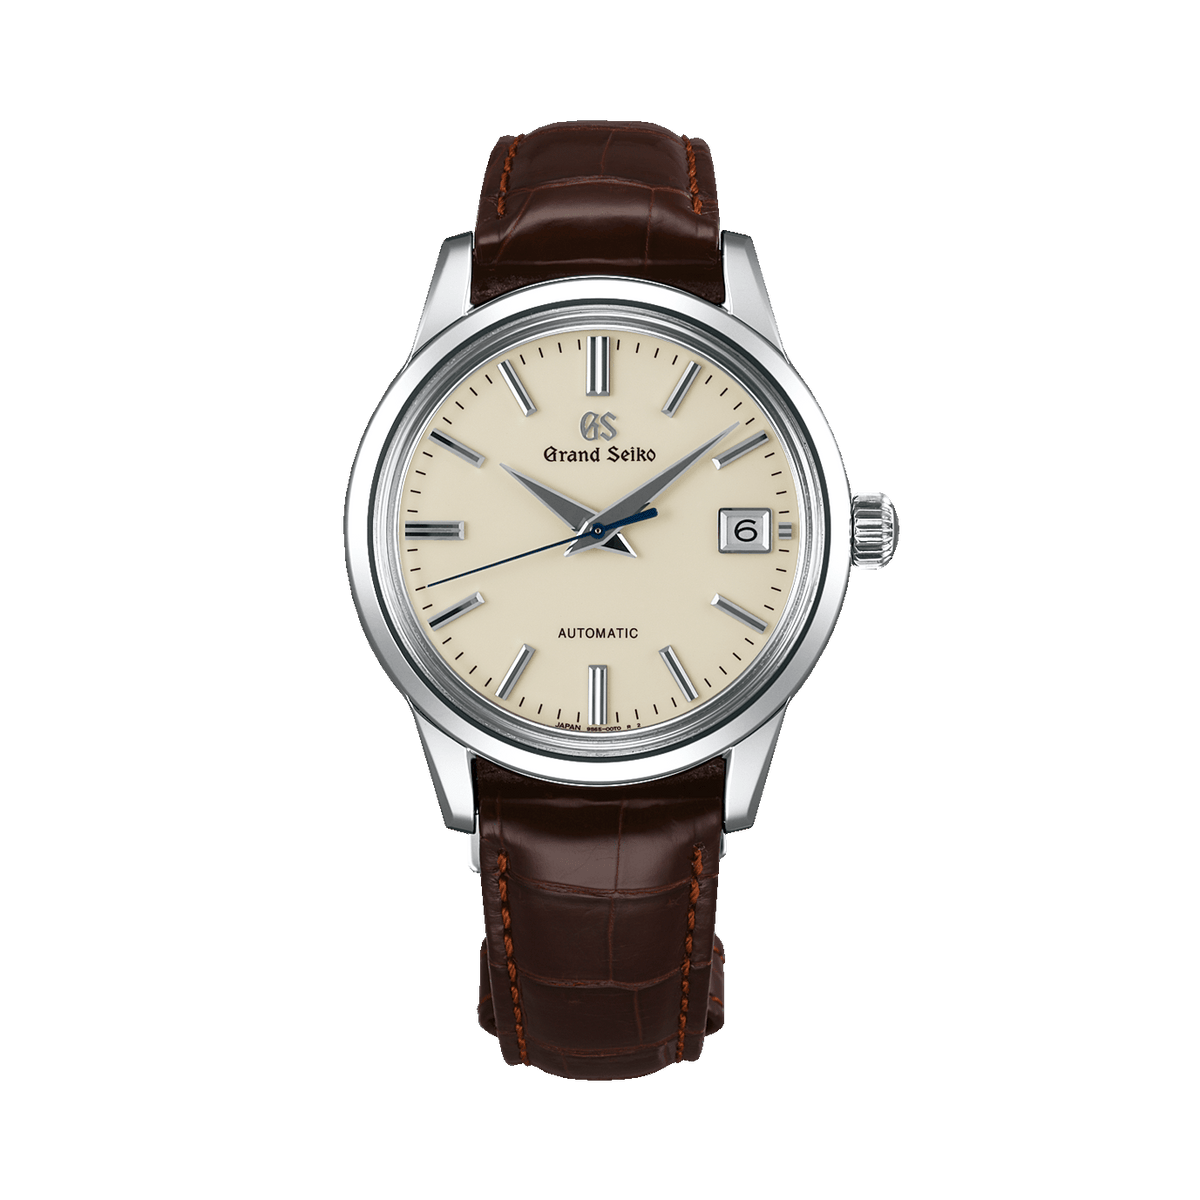 Mechanical Automatic Watch SBGR261